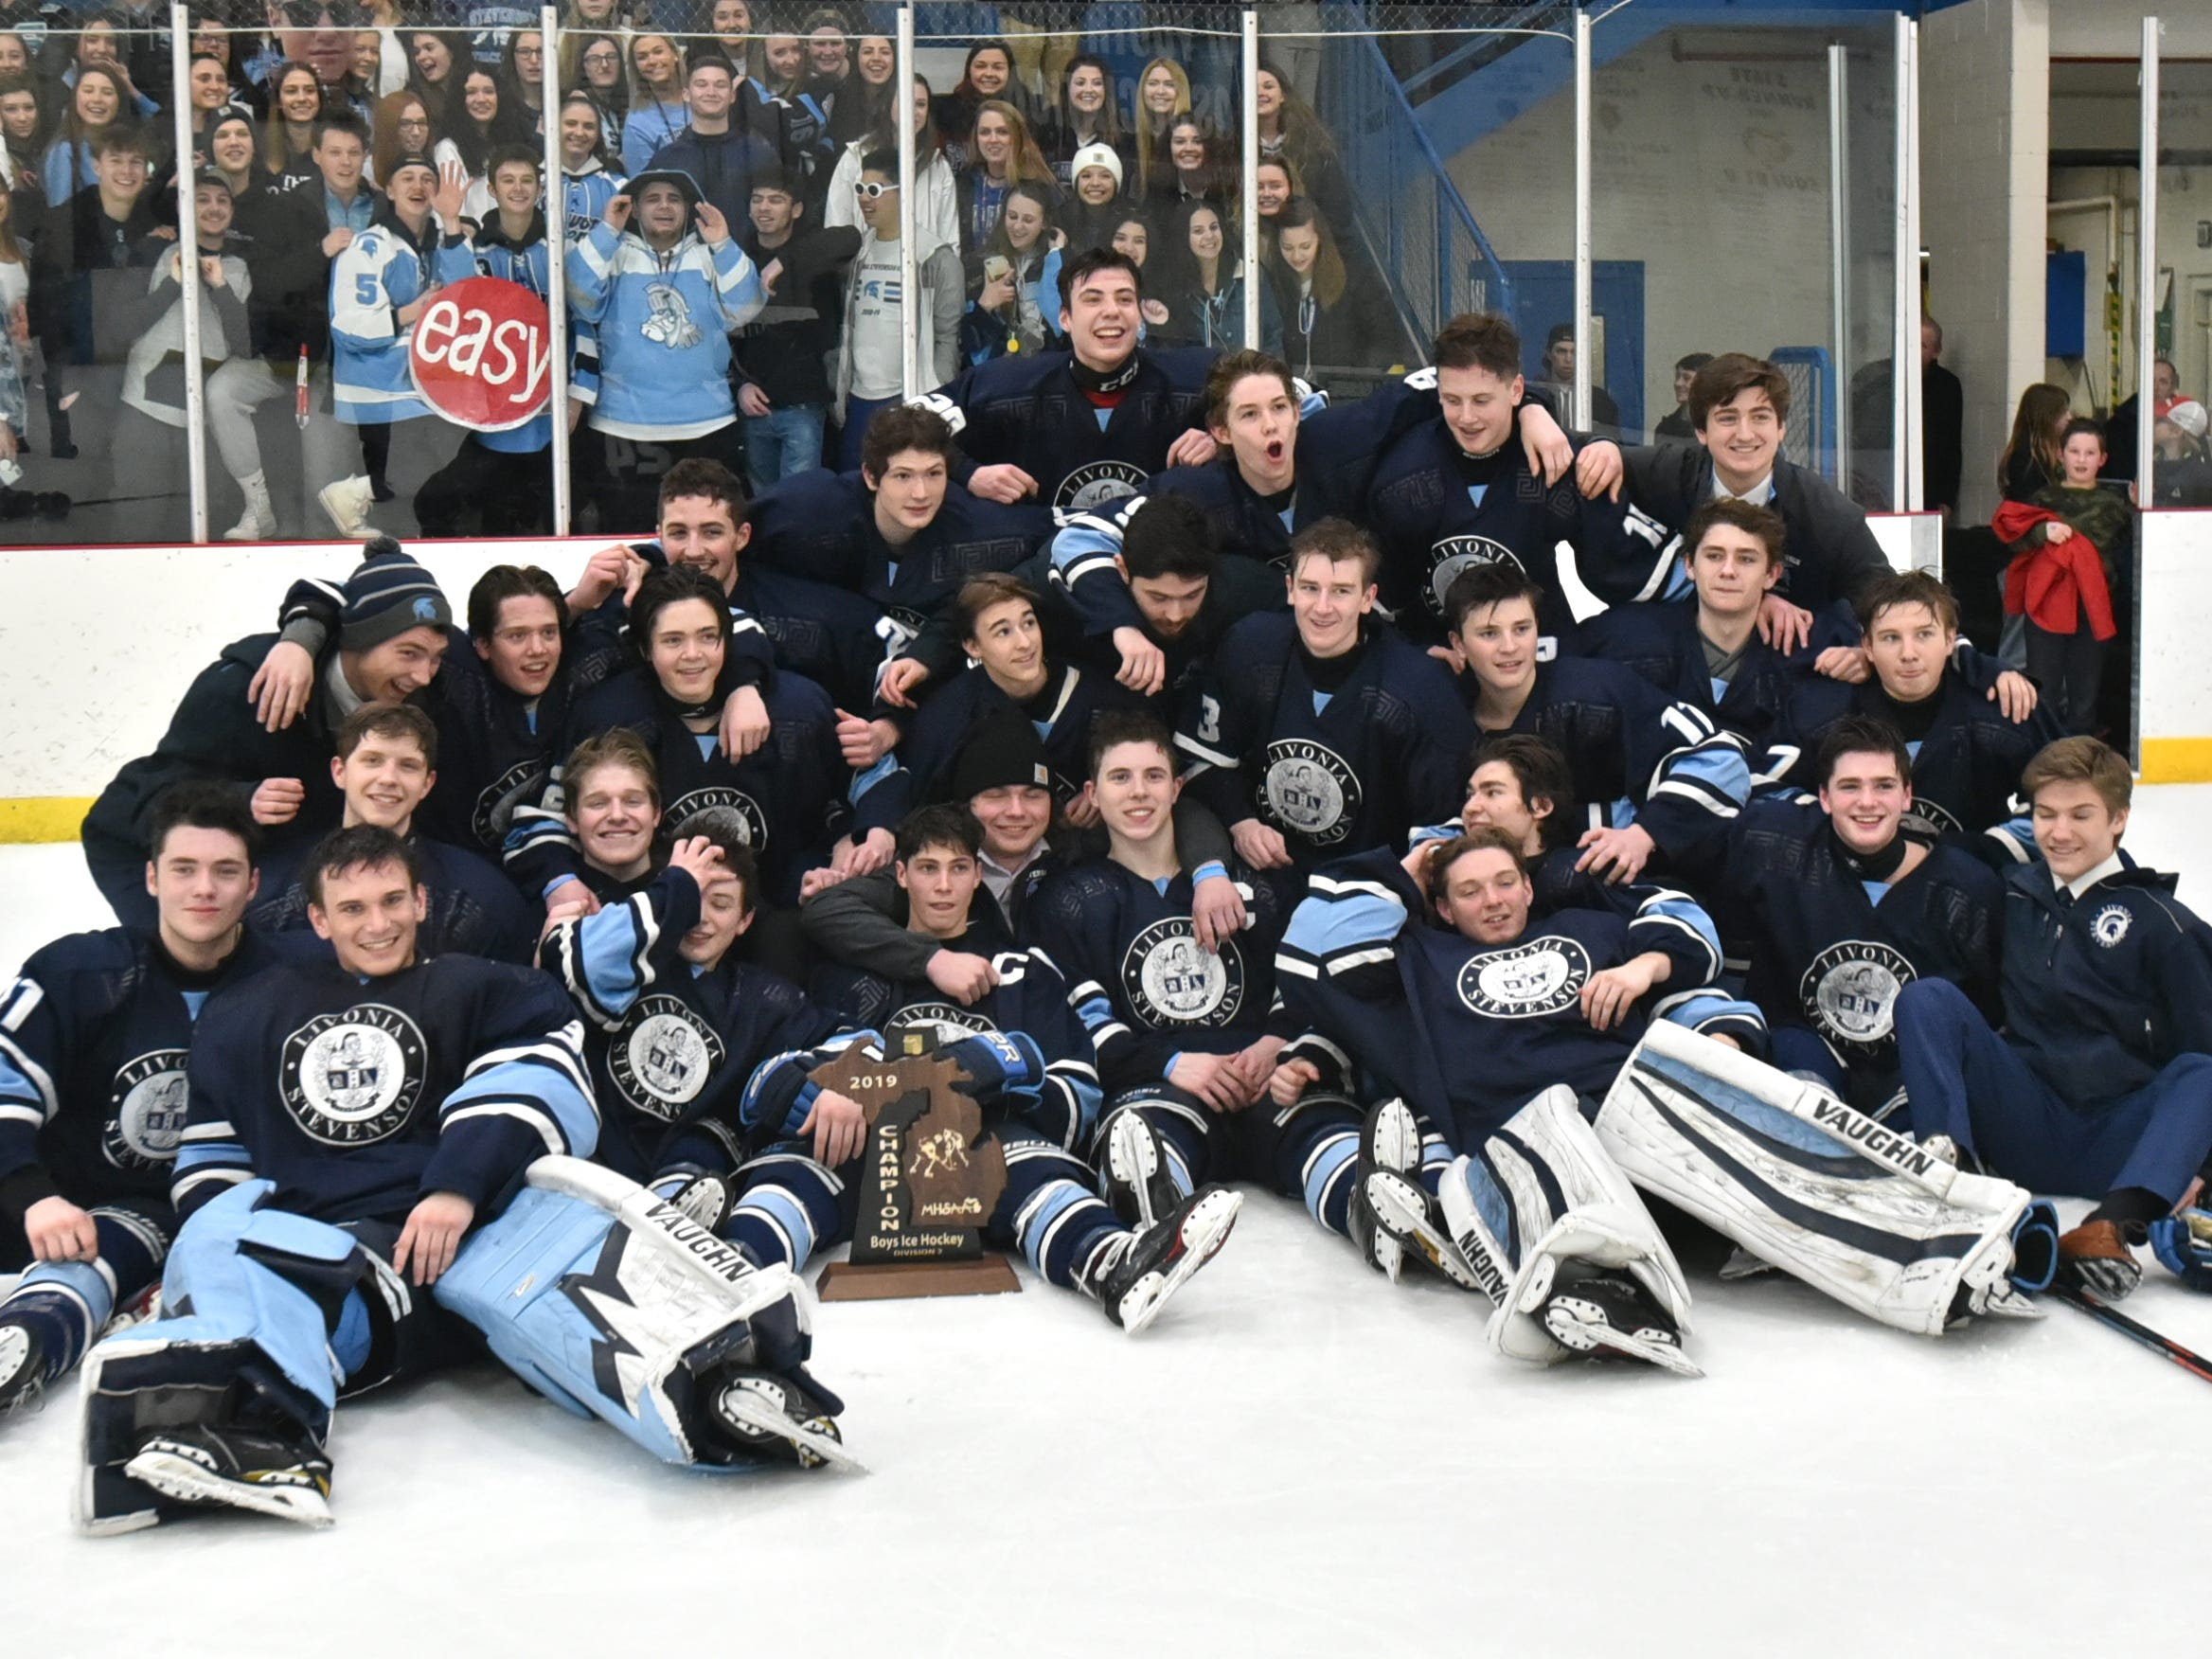 The Livonia Stevenson Spartan hockey team poses with their MHSAA regional trophy after defeating Howell 3-0 on March 2.